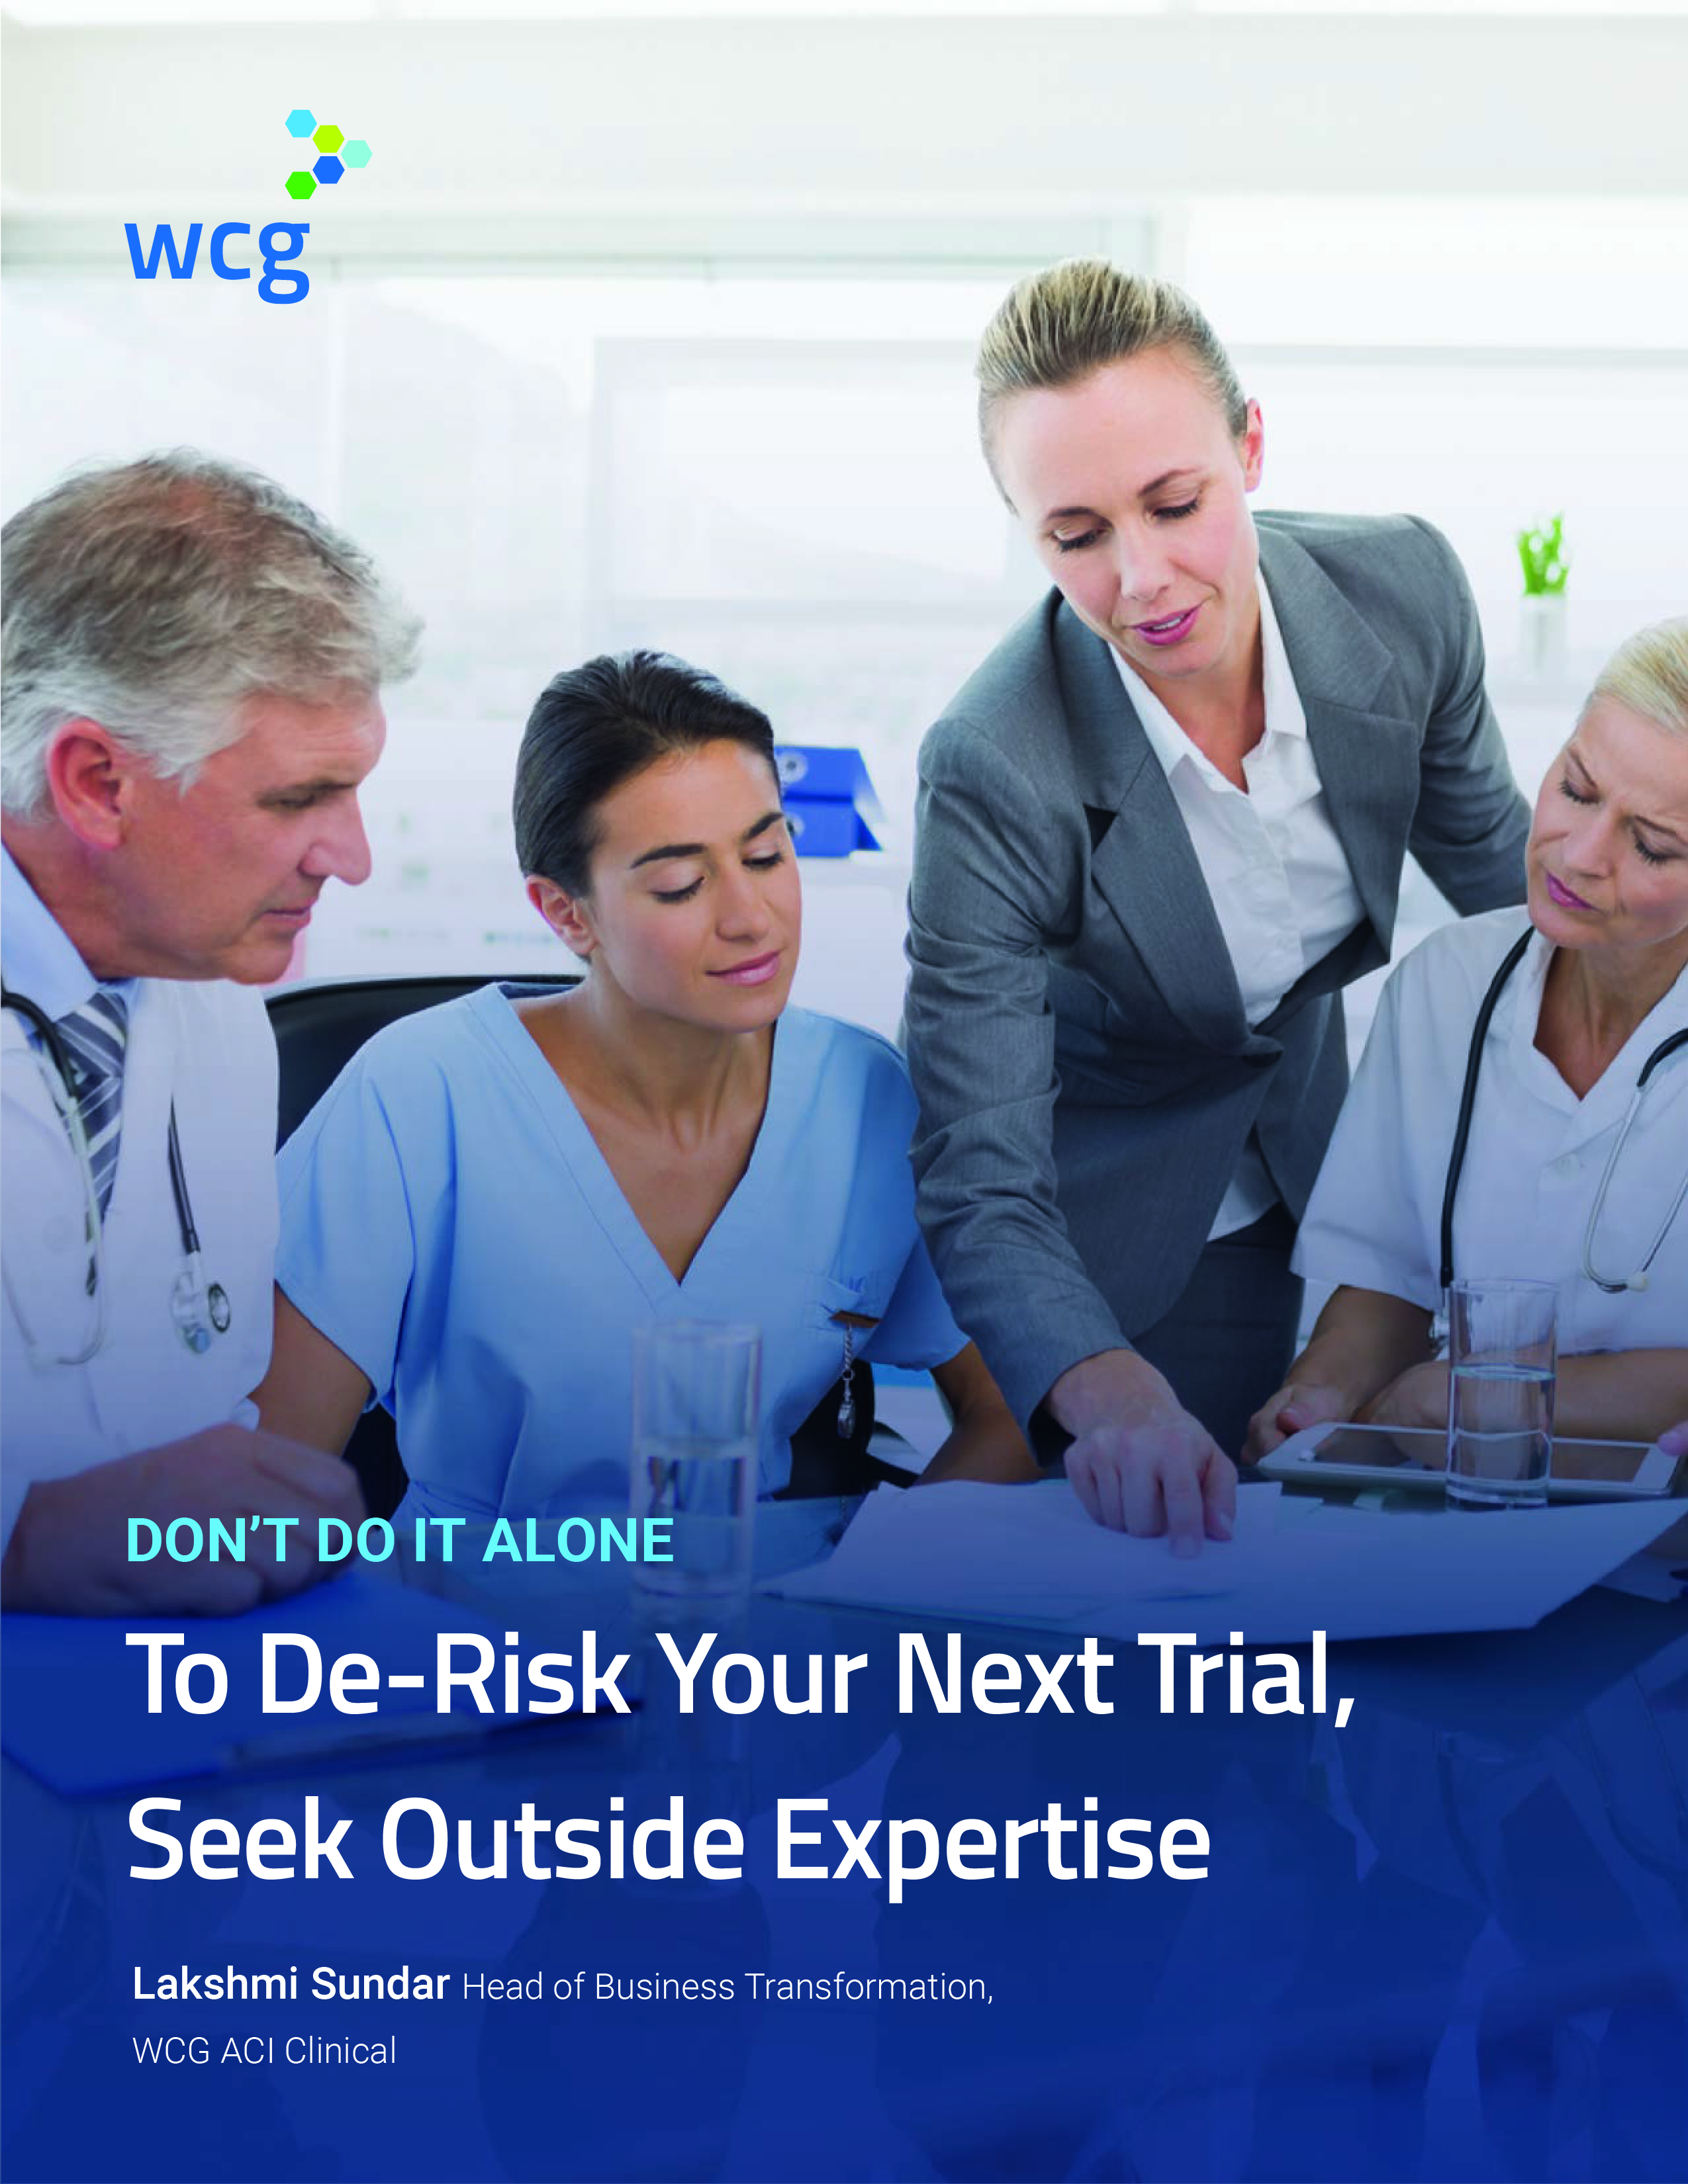 Don't Do It Alone: To De-Risk Your Next Trial, Seek Outside Expertise